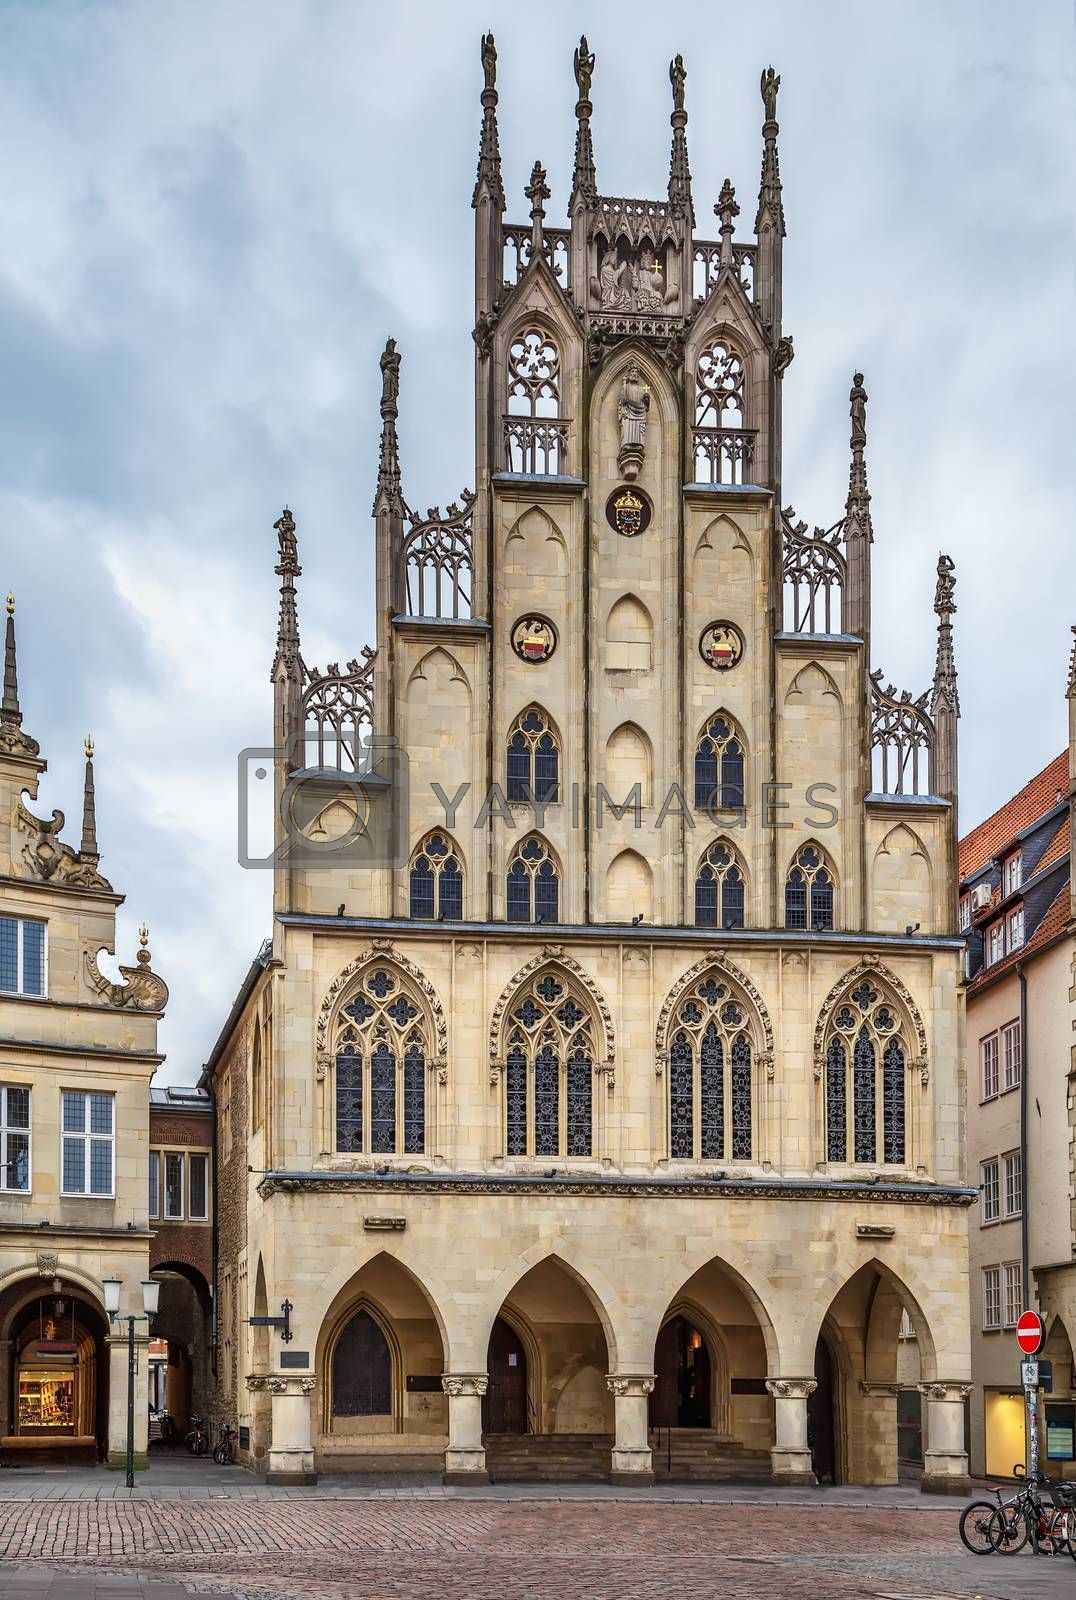 Royalty free image of Historical City Hall of Munster, Germany by borisb17